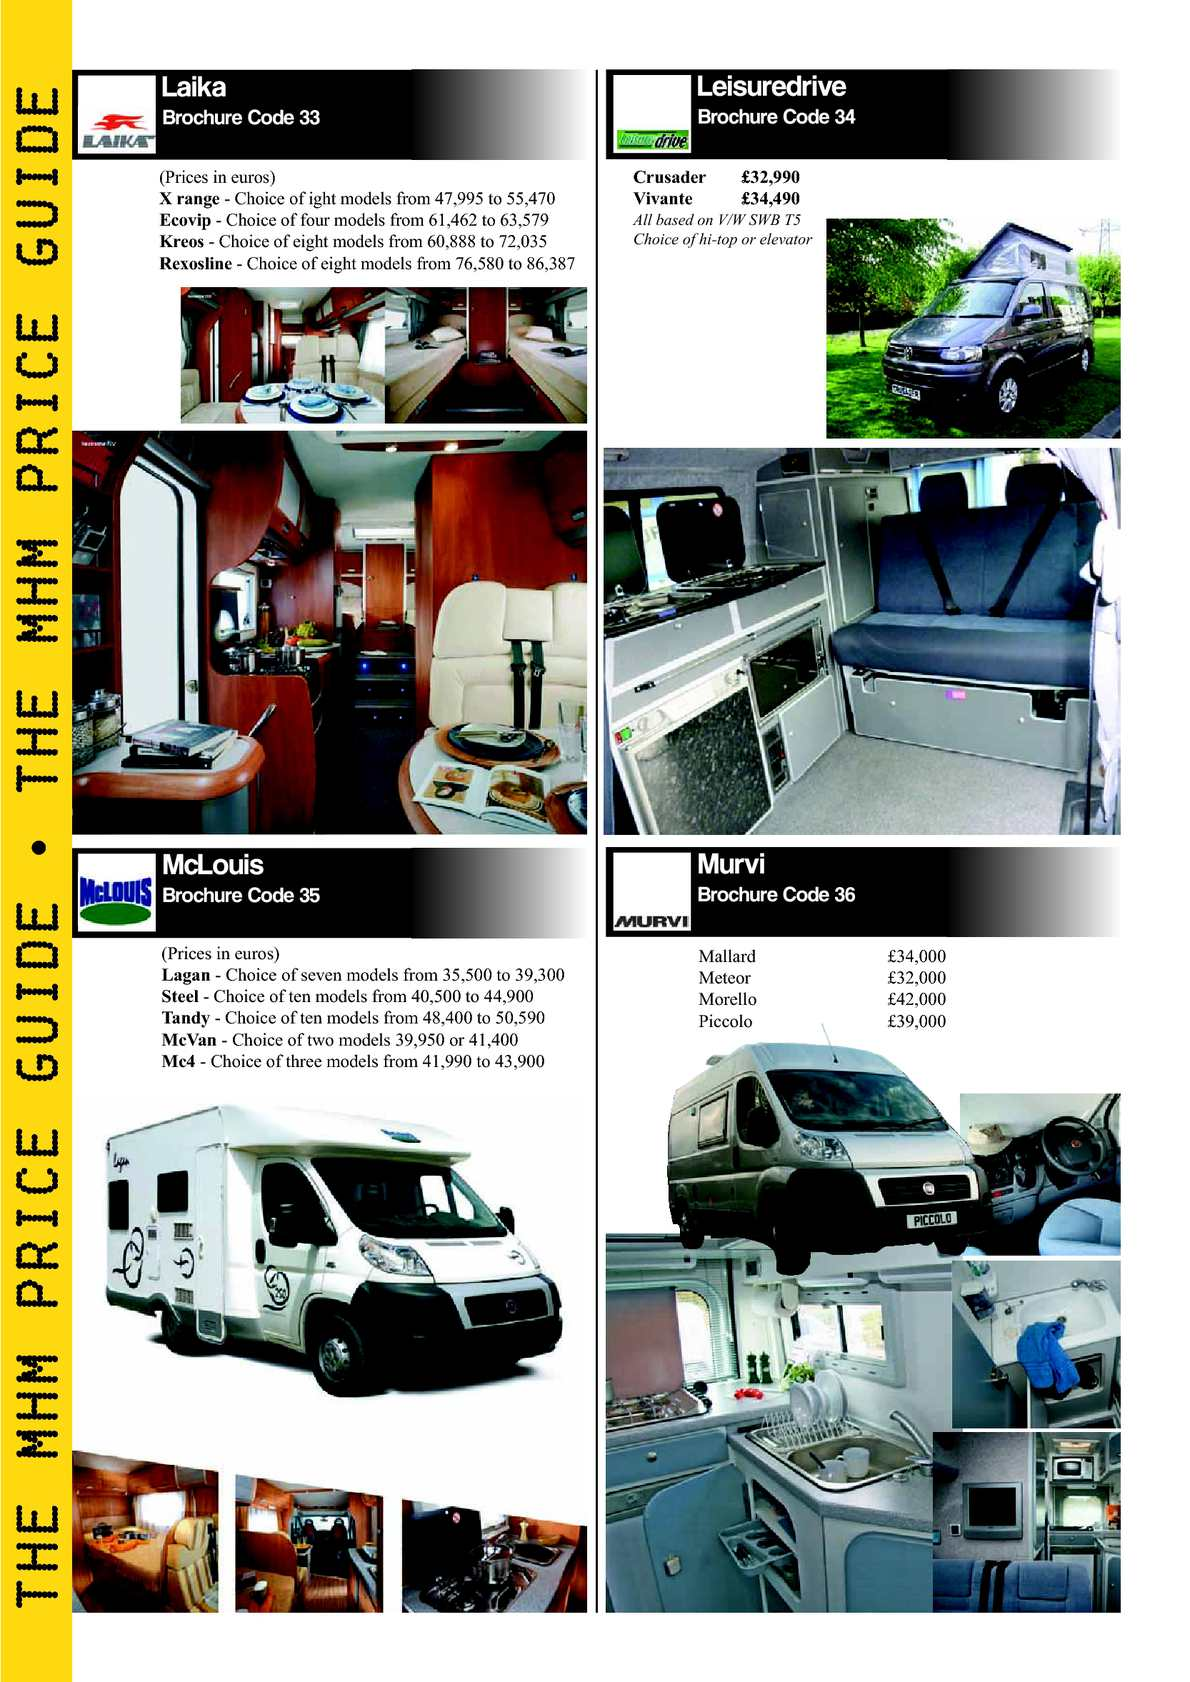 July 2012 motorhome monthly magazine calameo downloader page 75 fandeluxe Gallery